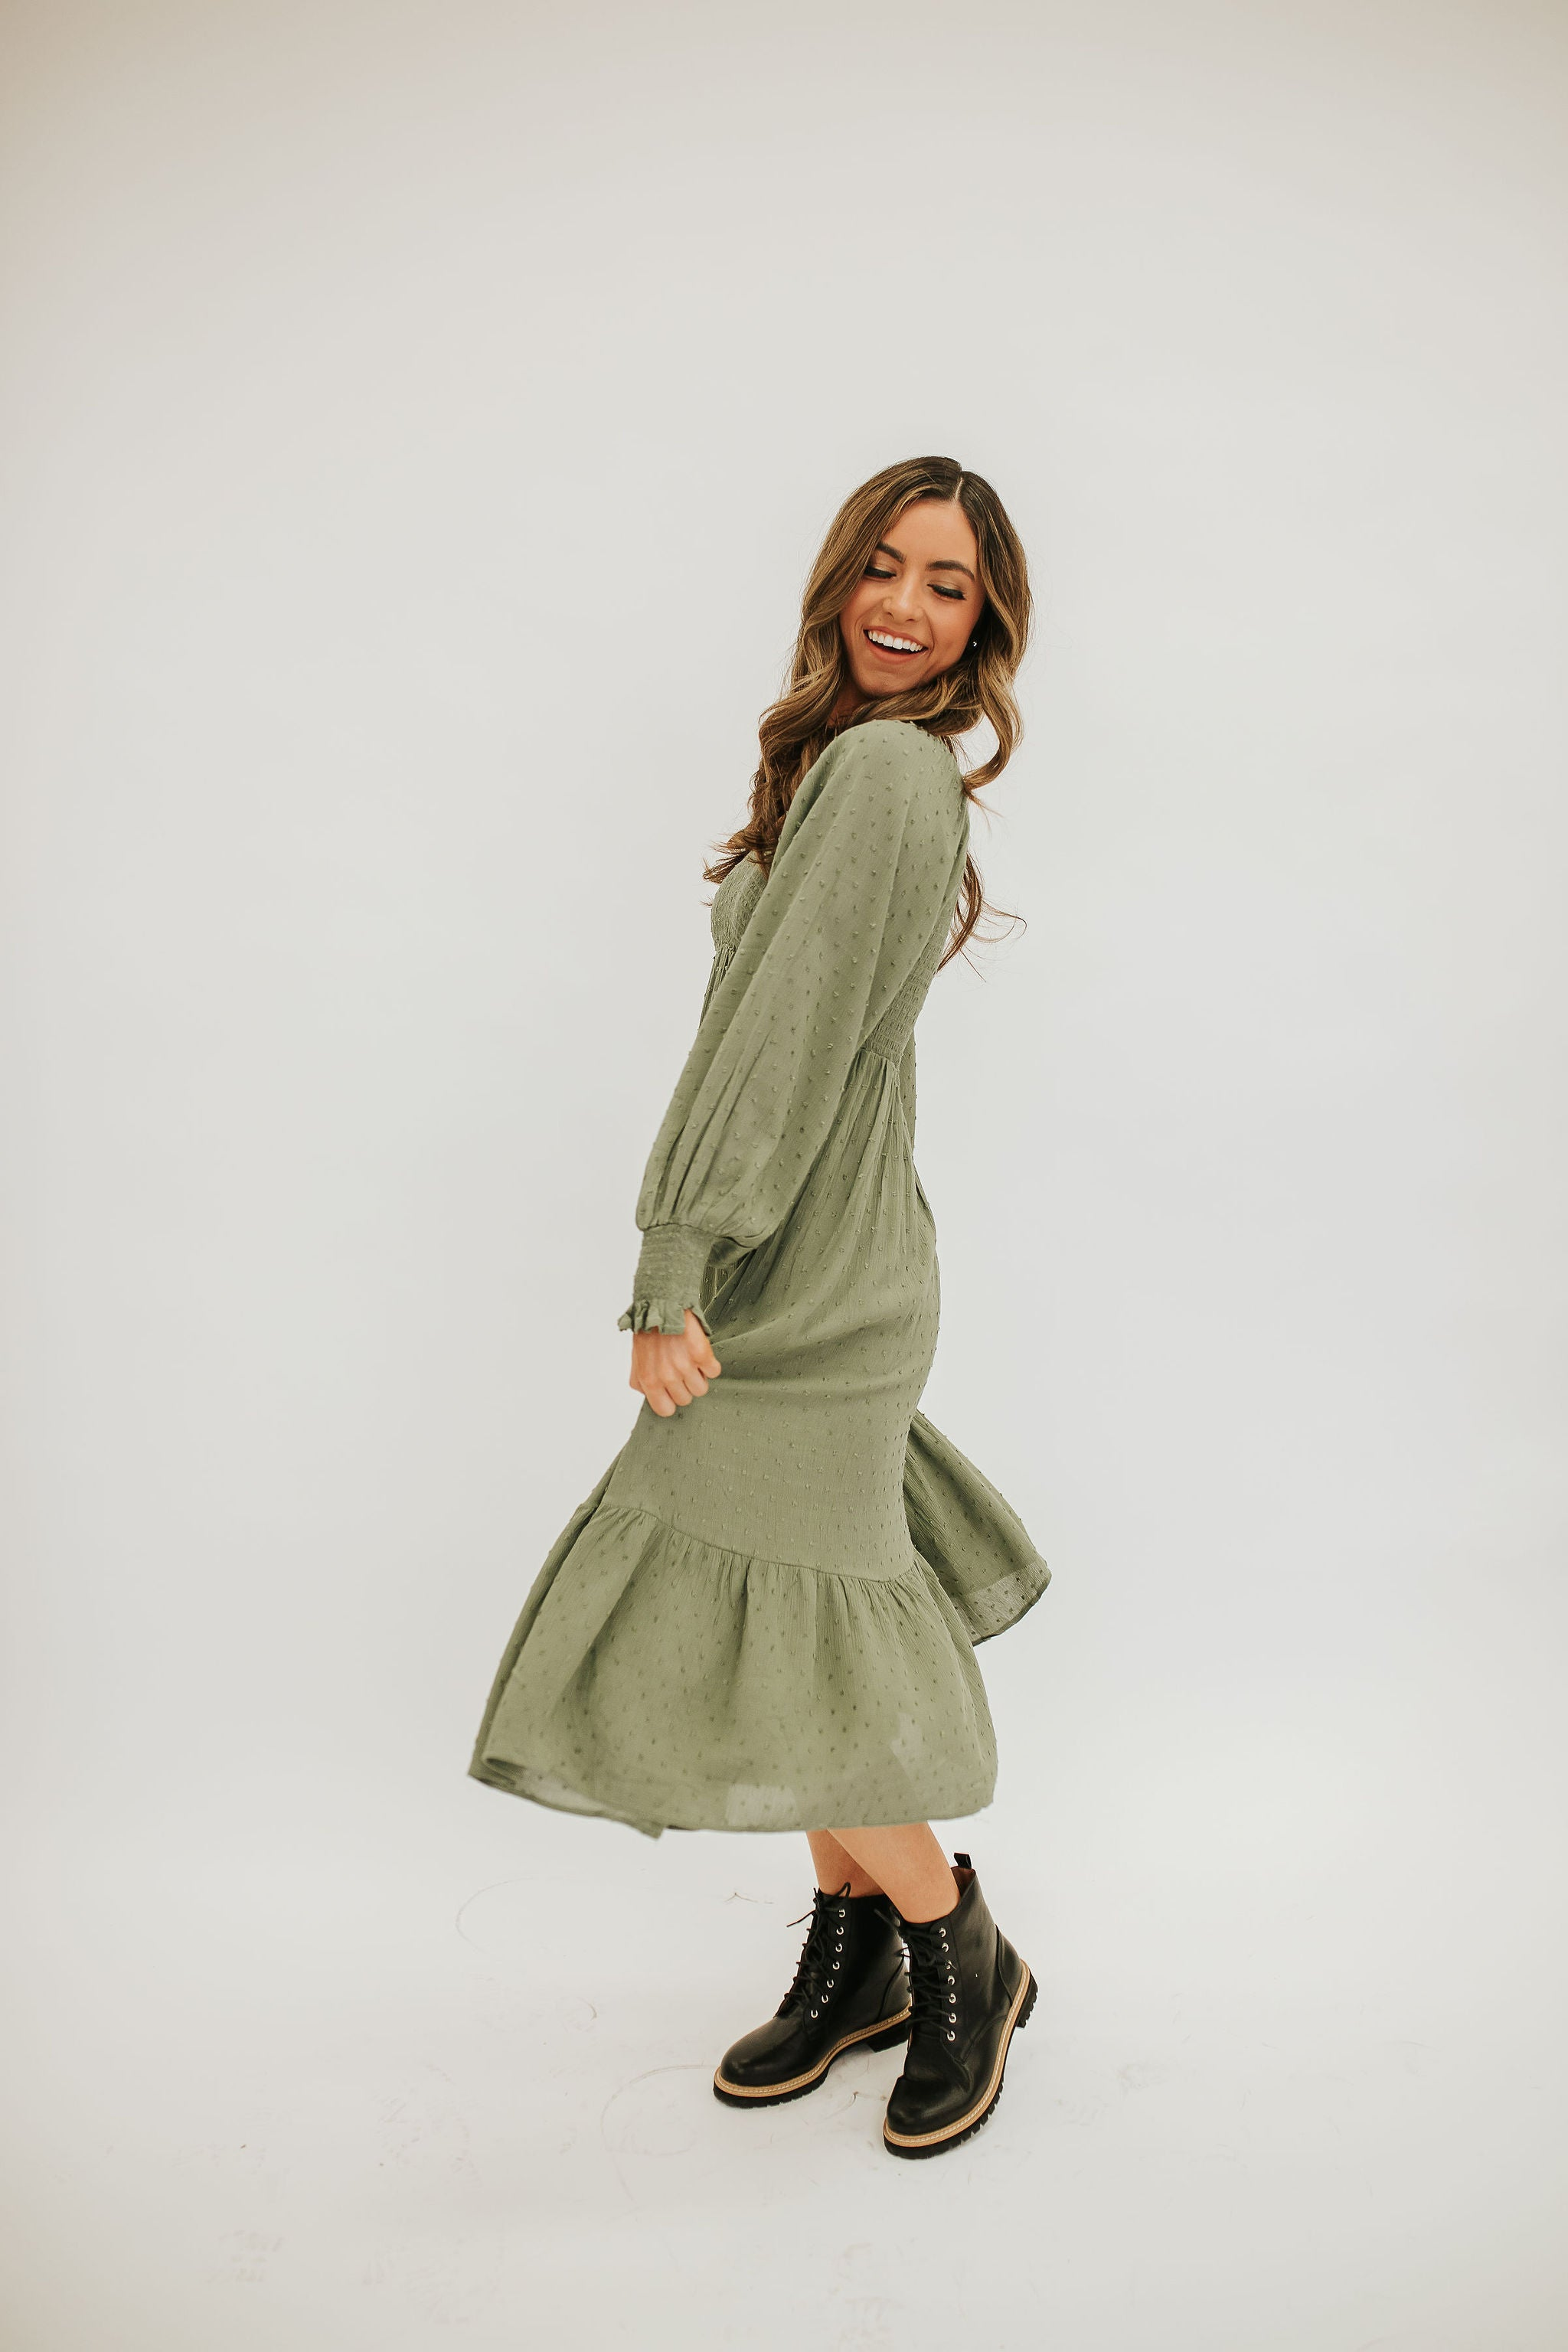 THE SCOUT SMOCKED SWISS DOT MIDI DRESS IN DUSTY OLIVE